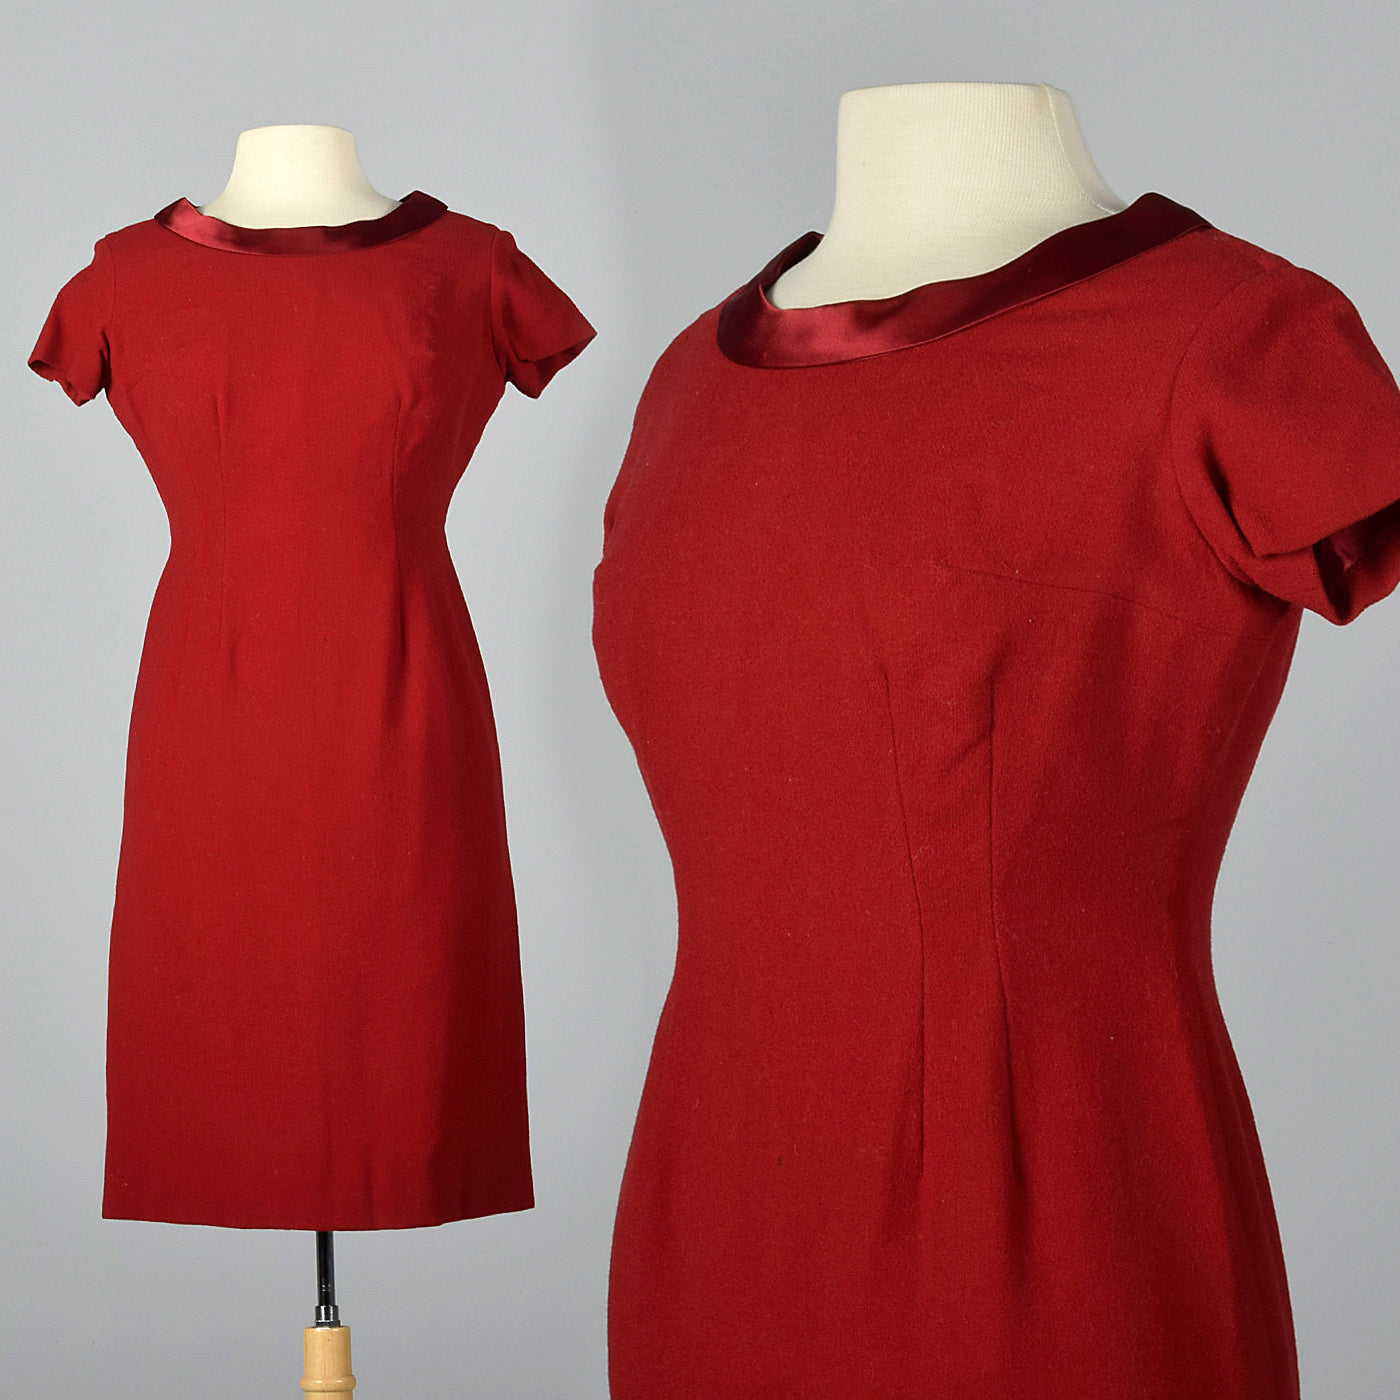 1950s Red Wool Dress with Satin Collar